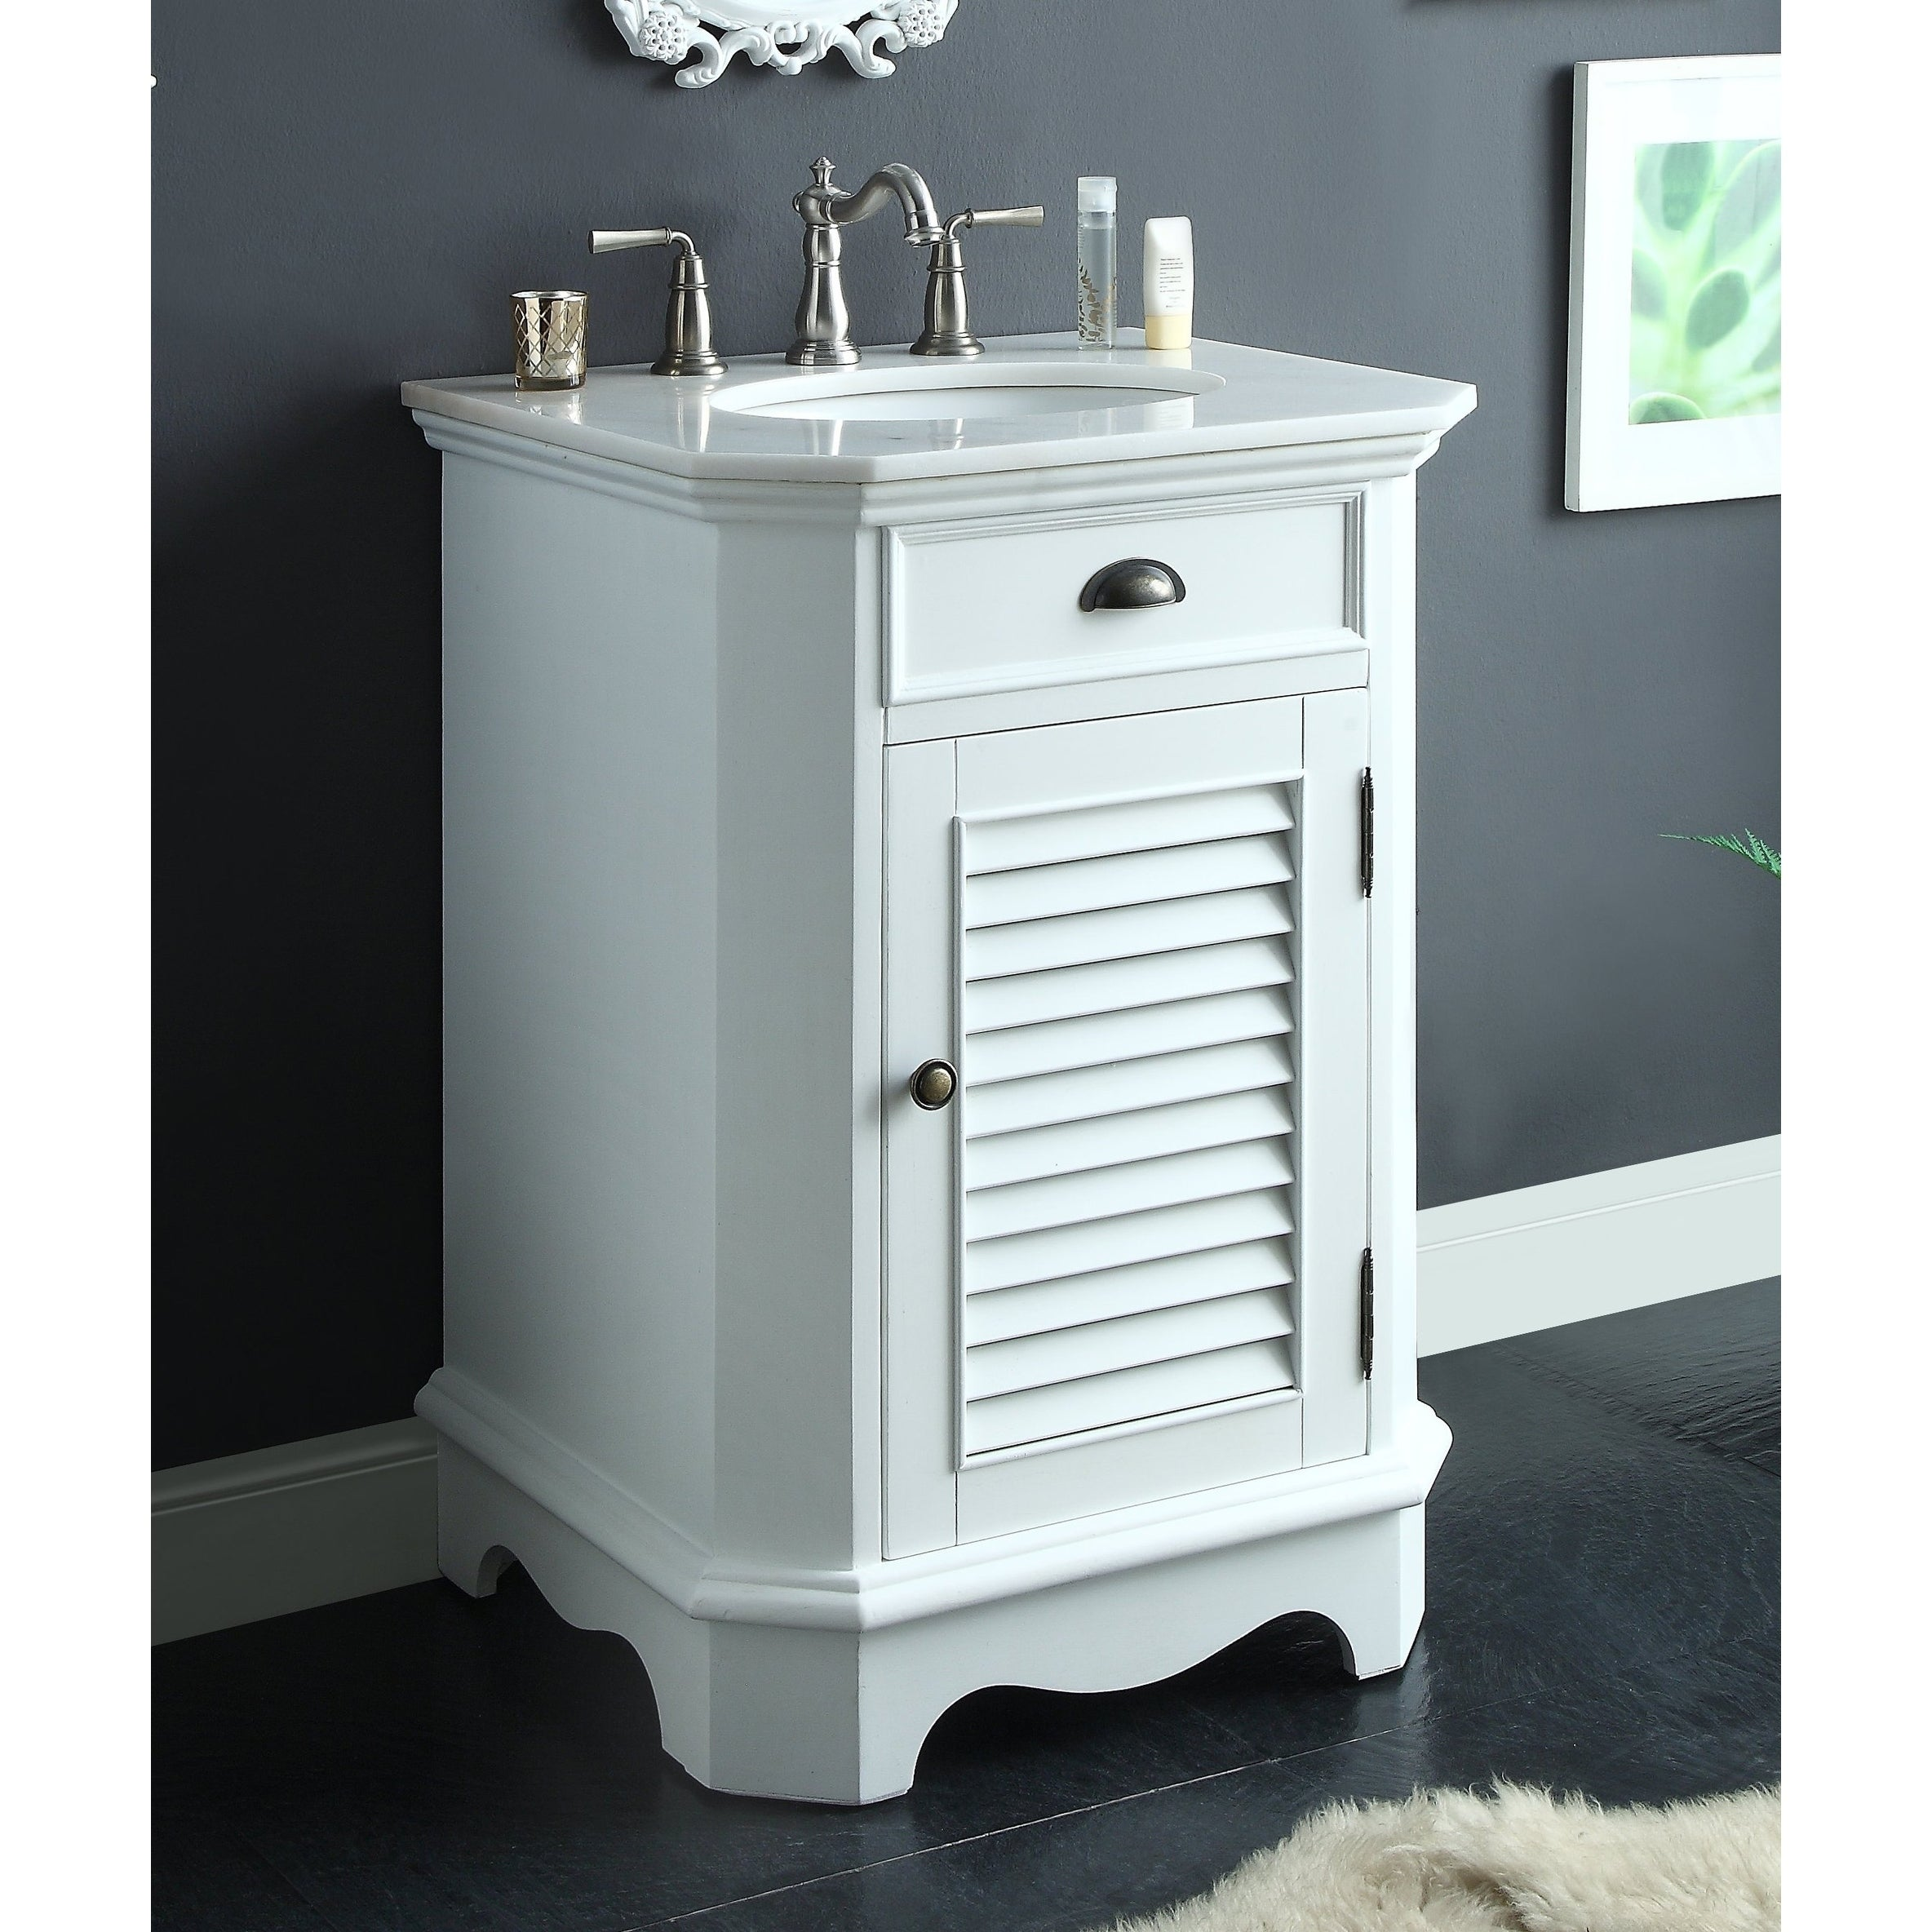 Shop 24 benton collection abbeville white vintage rustic sink vanity w bs free shipping today overstock com 20718351